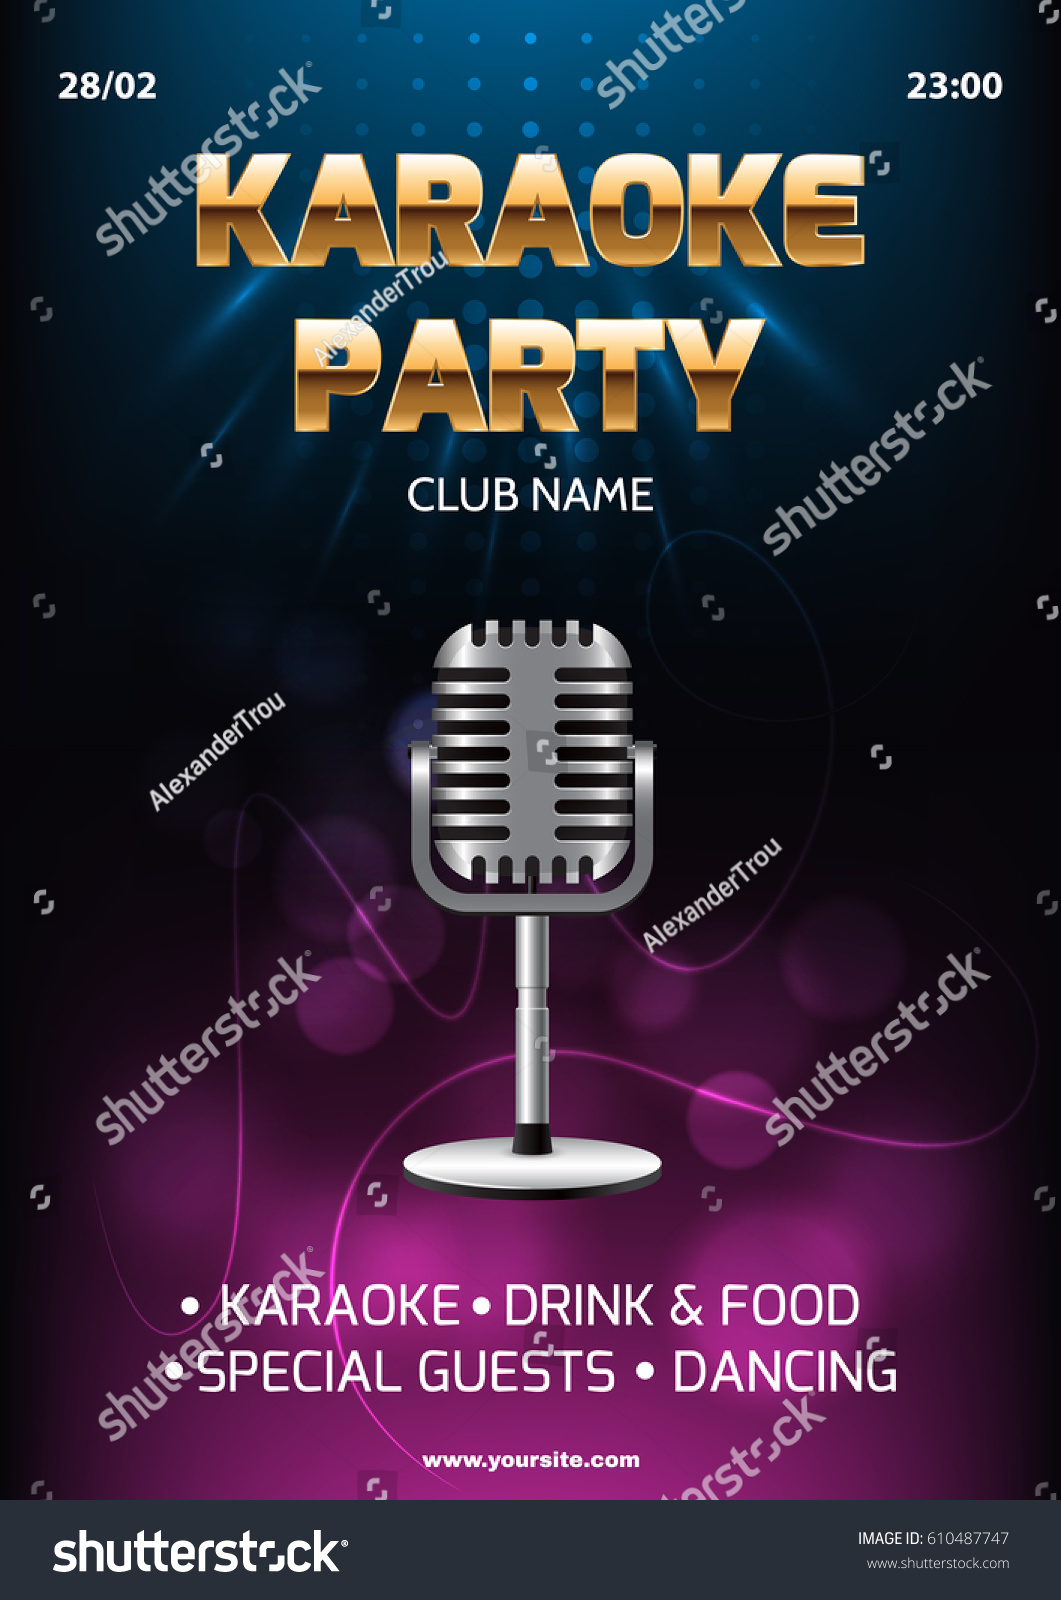 Karaoke Party Invitation Flyer Template Dark Stock Vector 610487747 ...